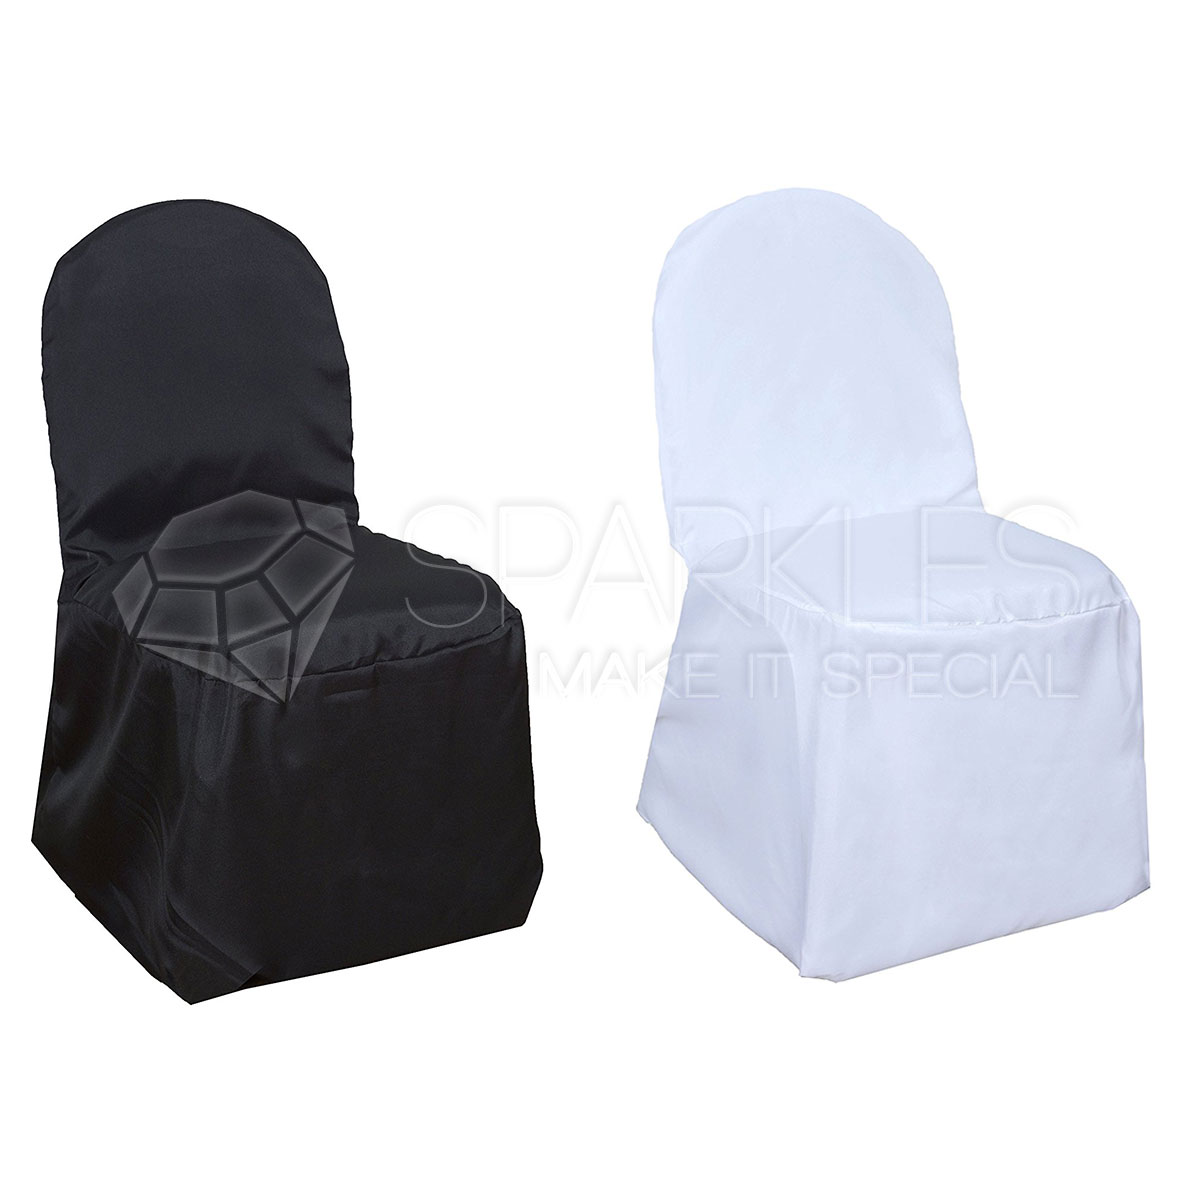 universal banquet chair covers diy rocking plans polyester black or white wedding